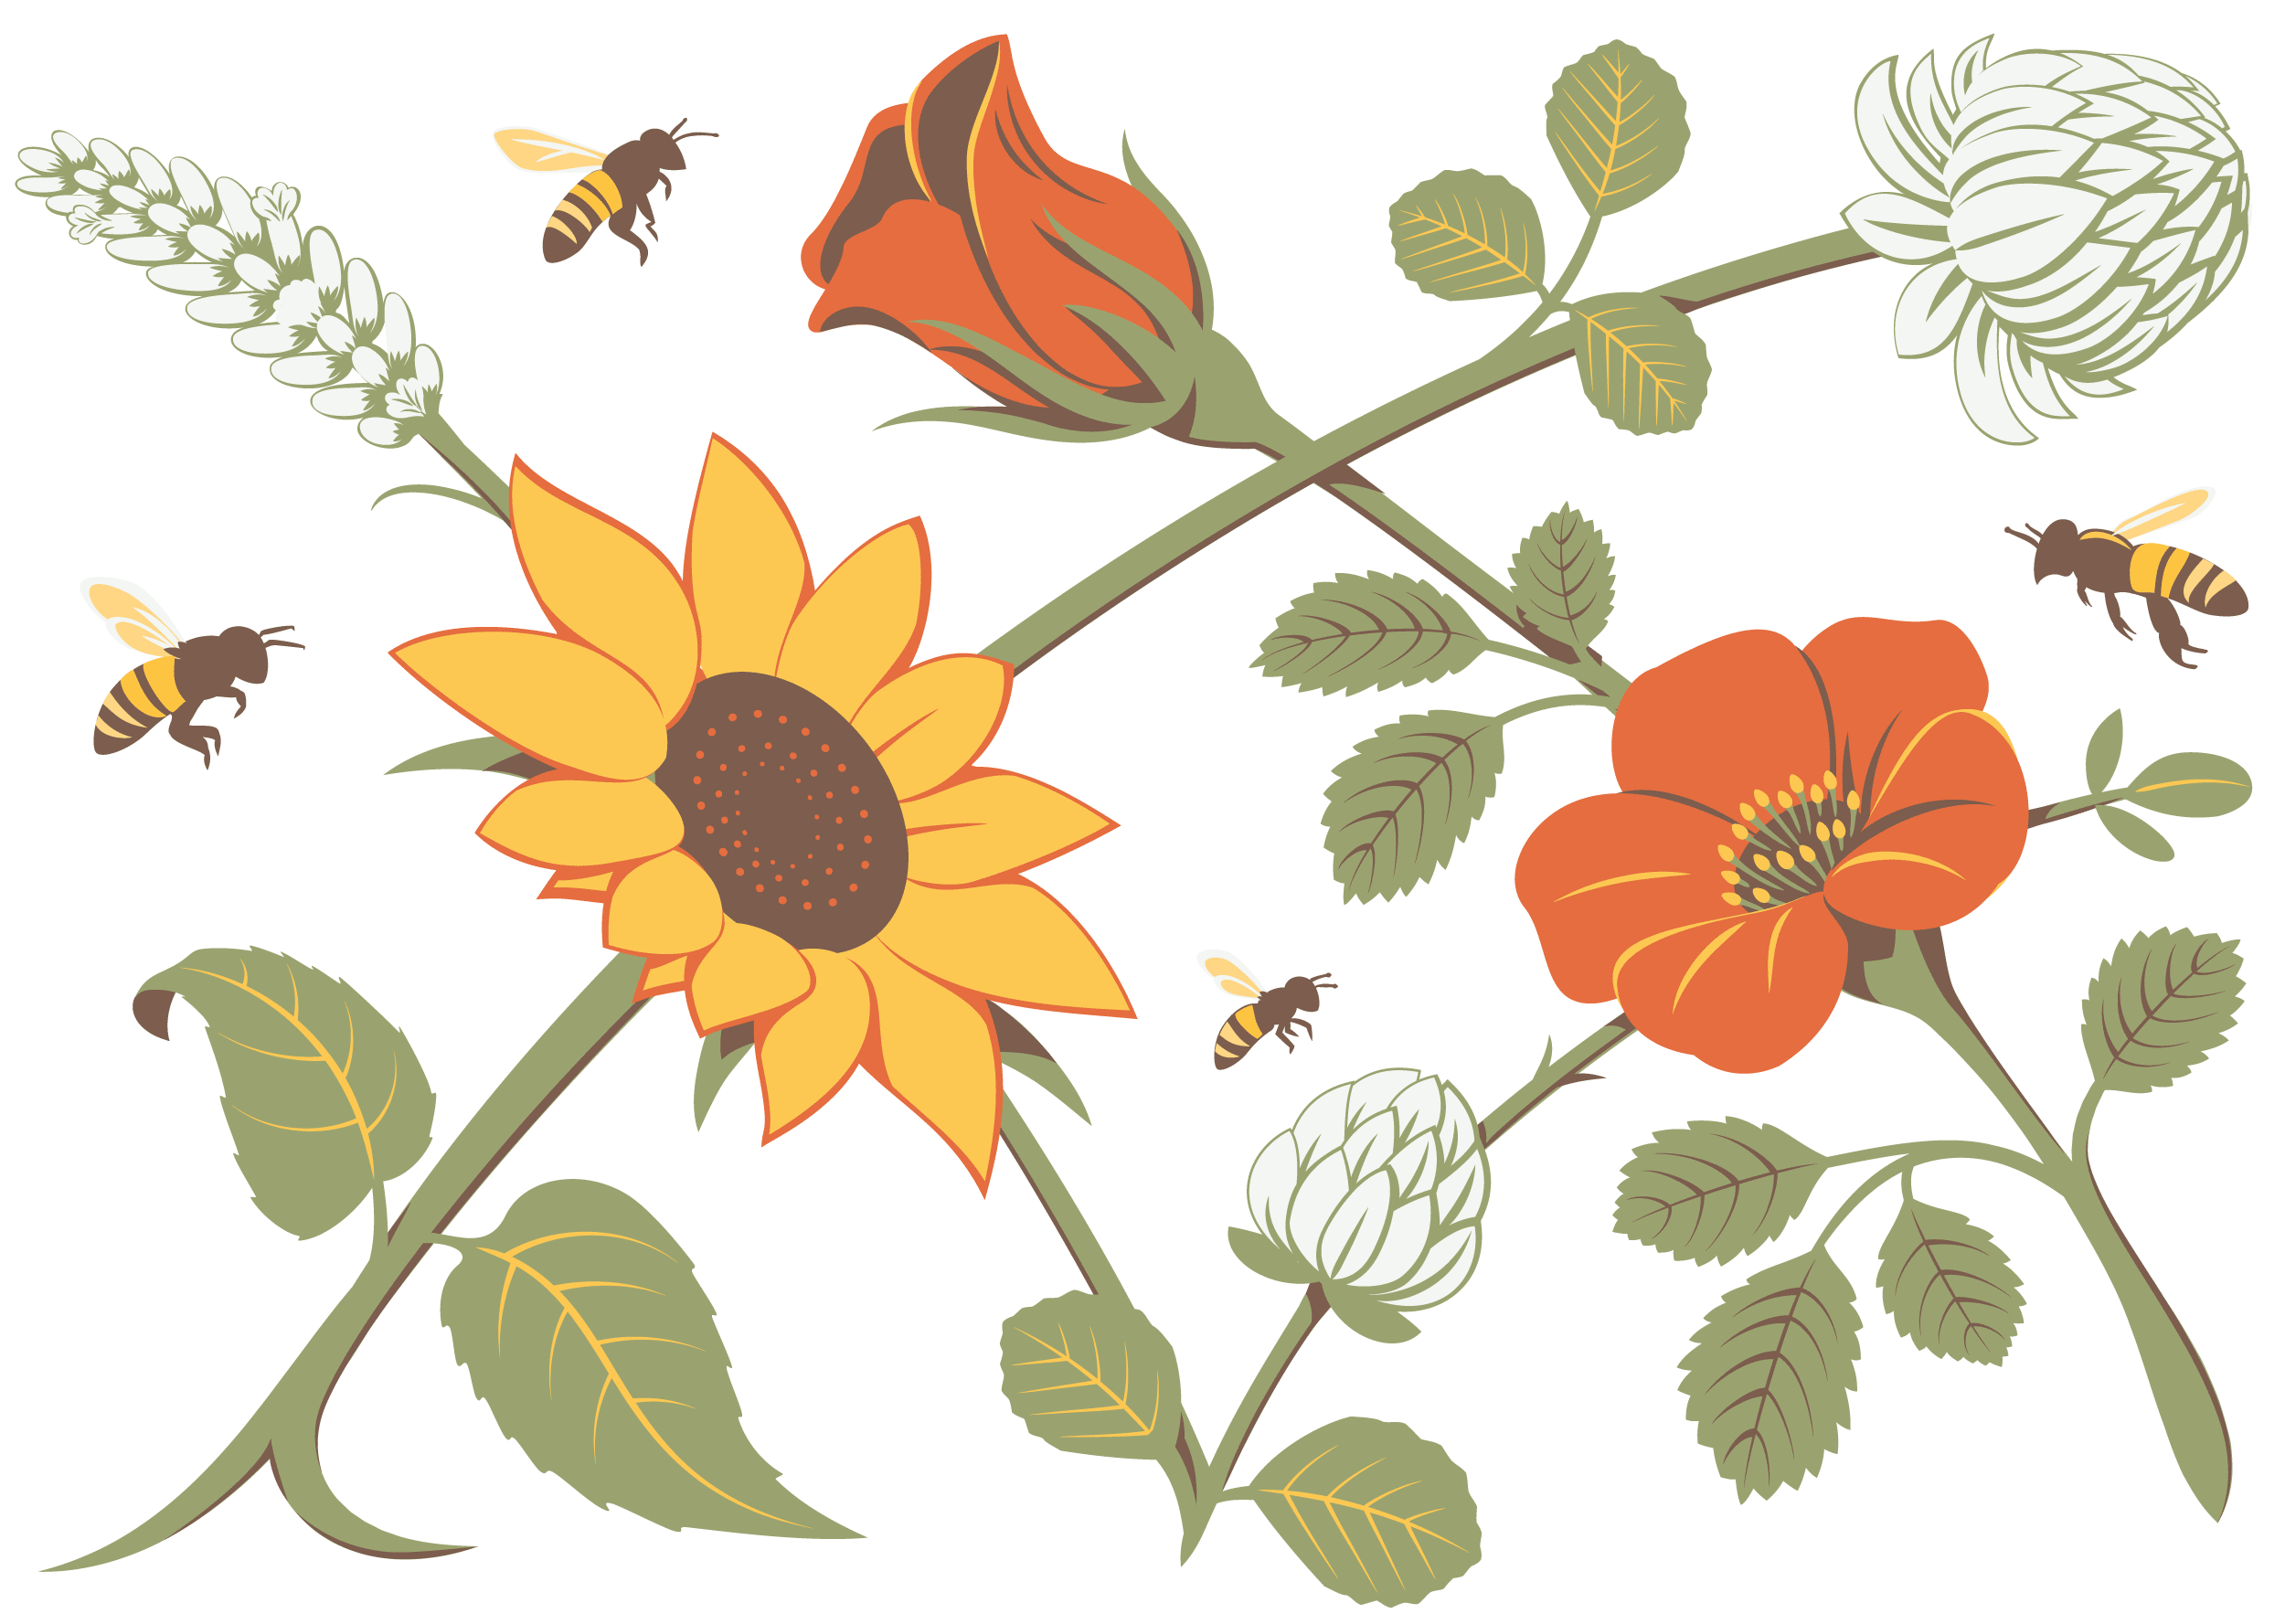 Some of the plant detail isolated from the artwork